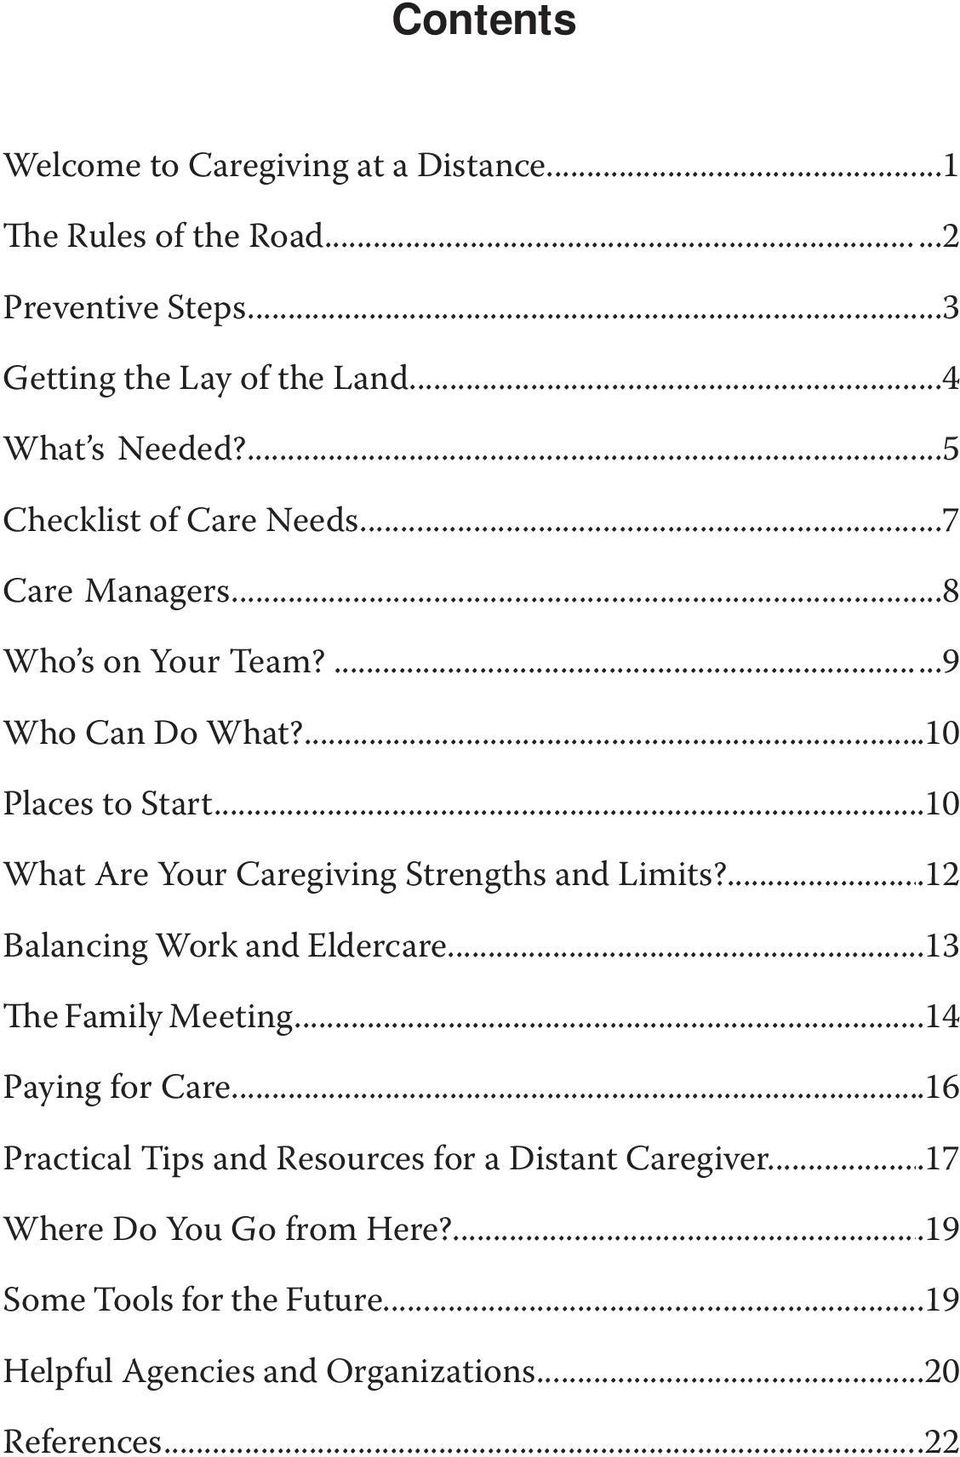 ...11.12 Balancing Work and Eldercare...12.13 The Family Meeting...12.14 Paying for Care...14.16 Practical Tips and Resources for a Distant Caregiver...15.